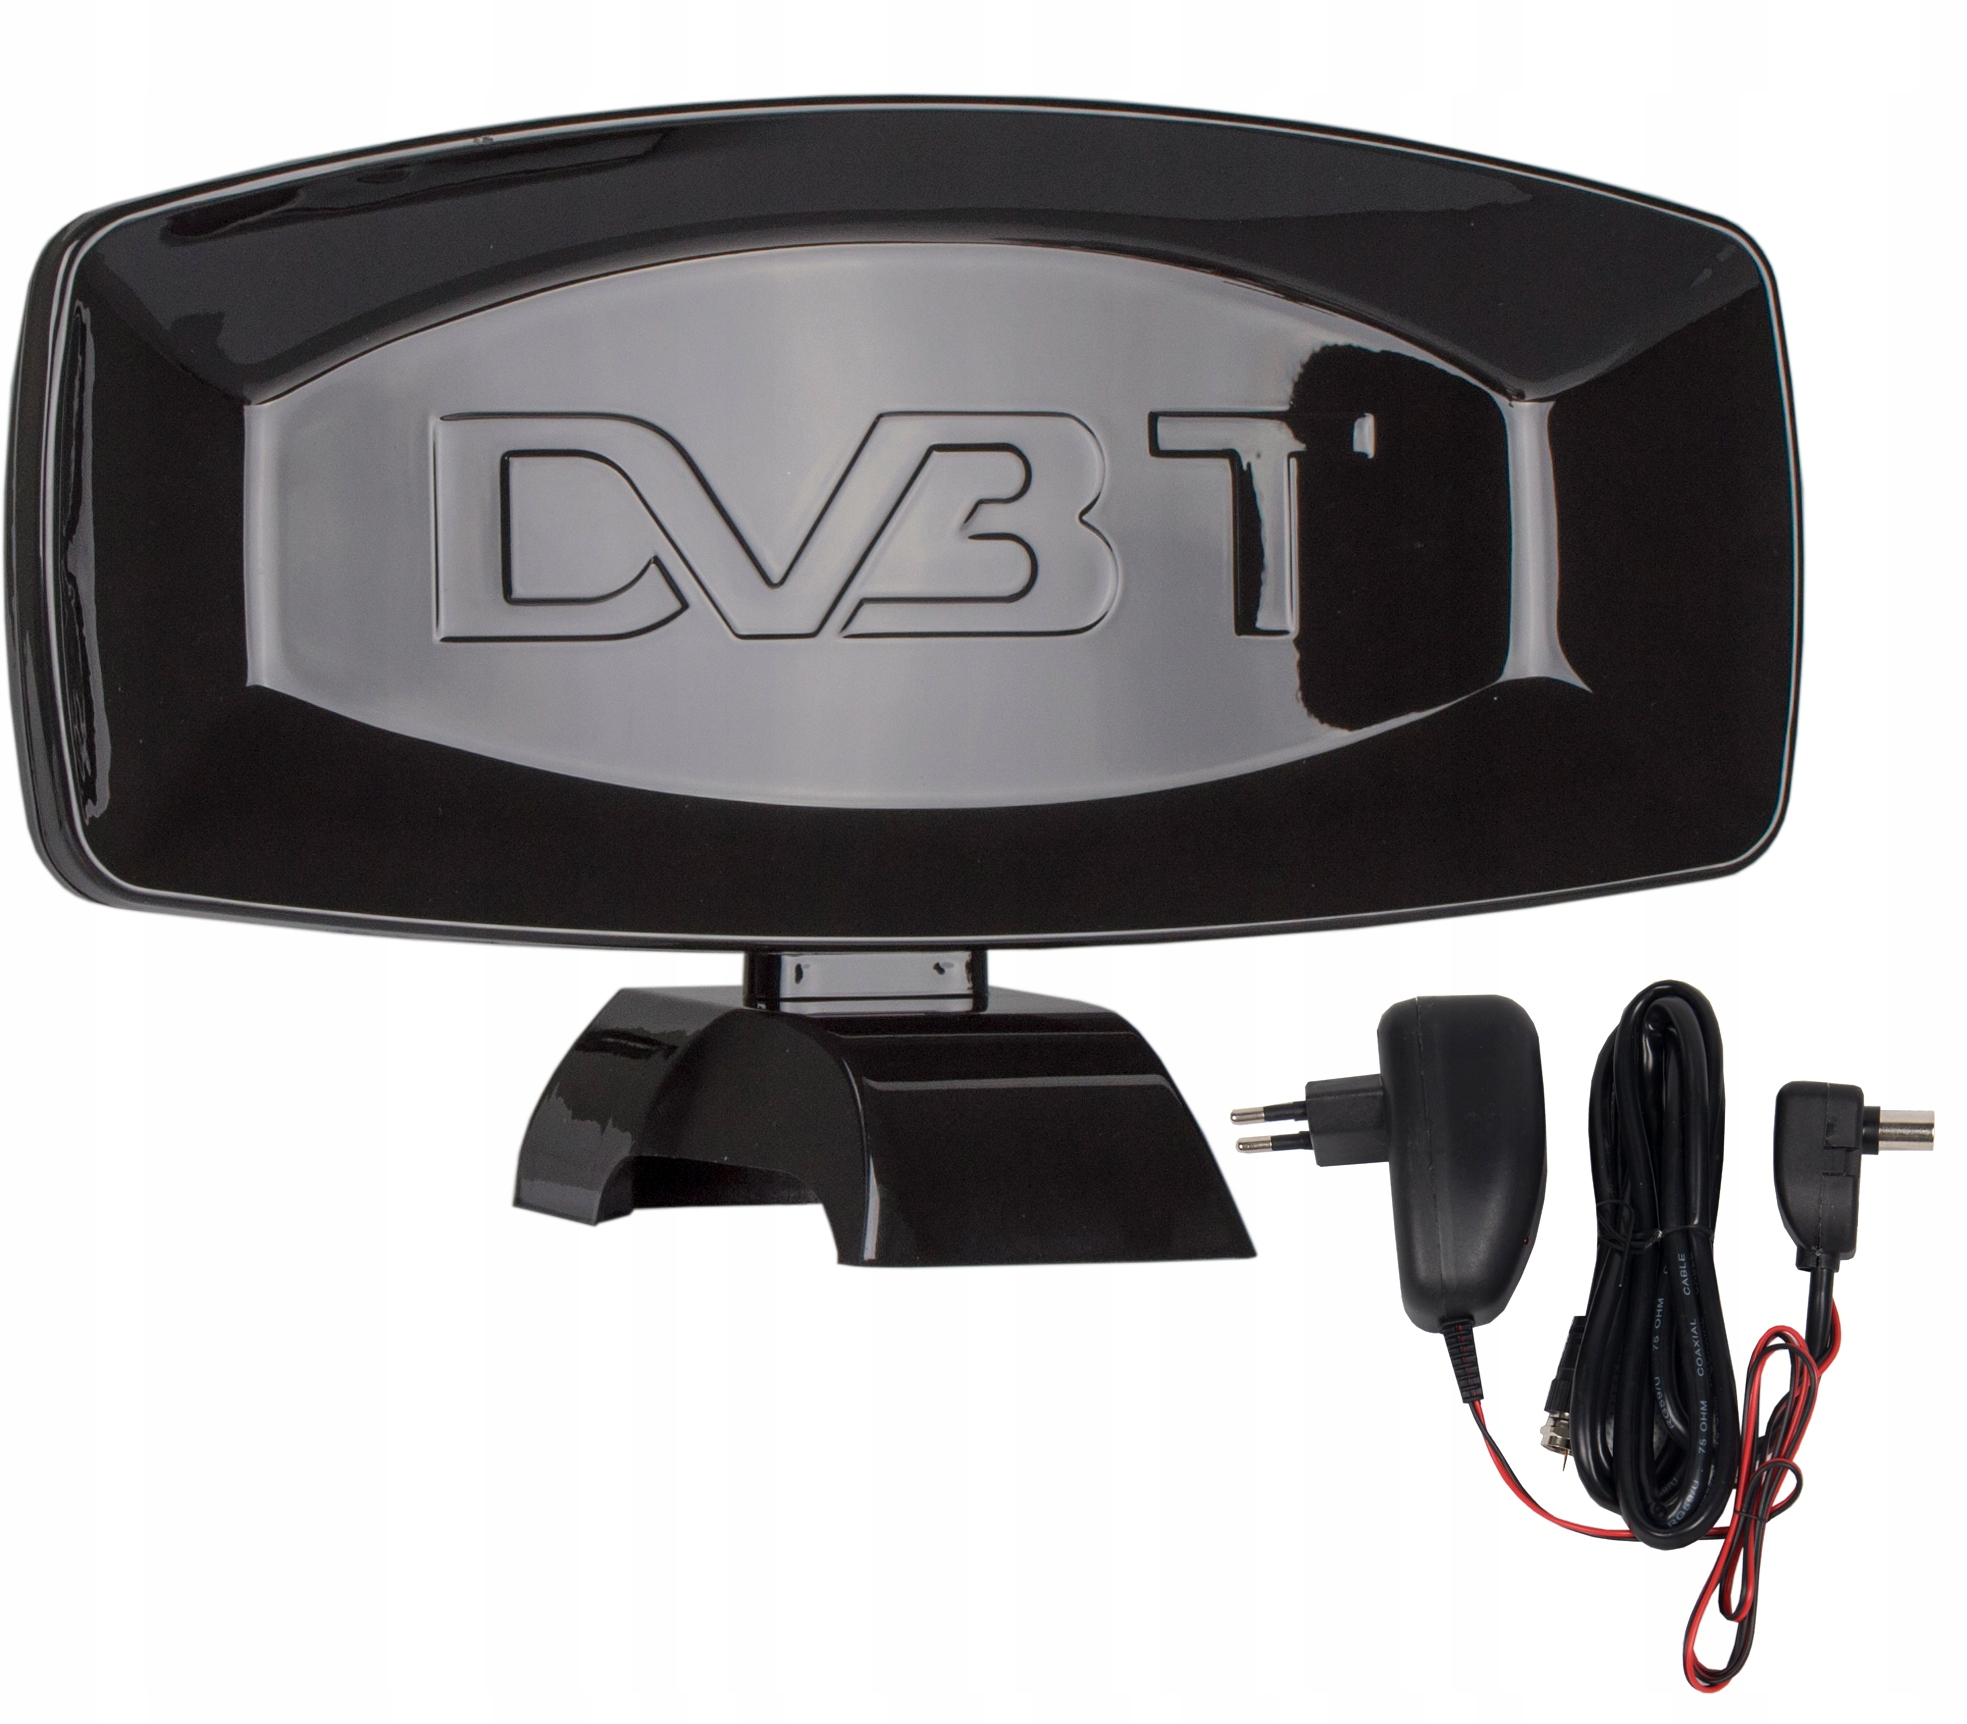 Item ANTENNA DVBT TV OFFER STRONG + AMP + CABLE